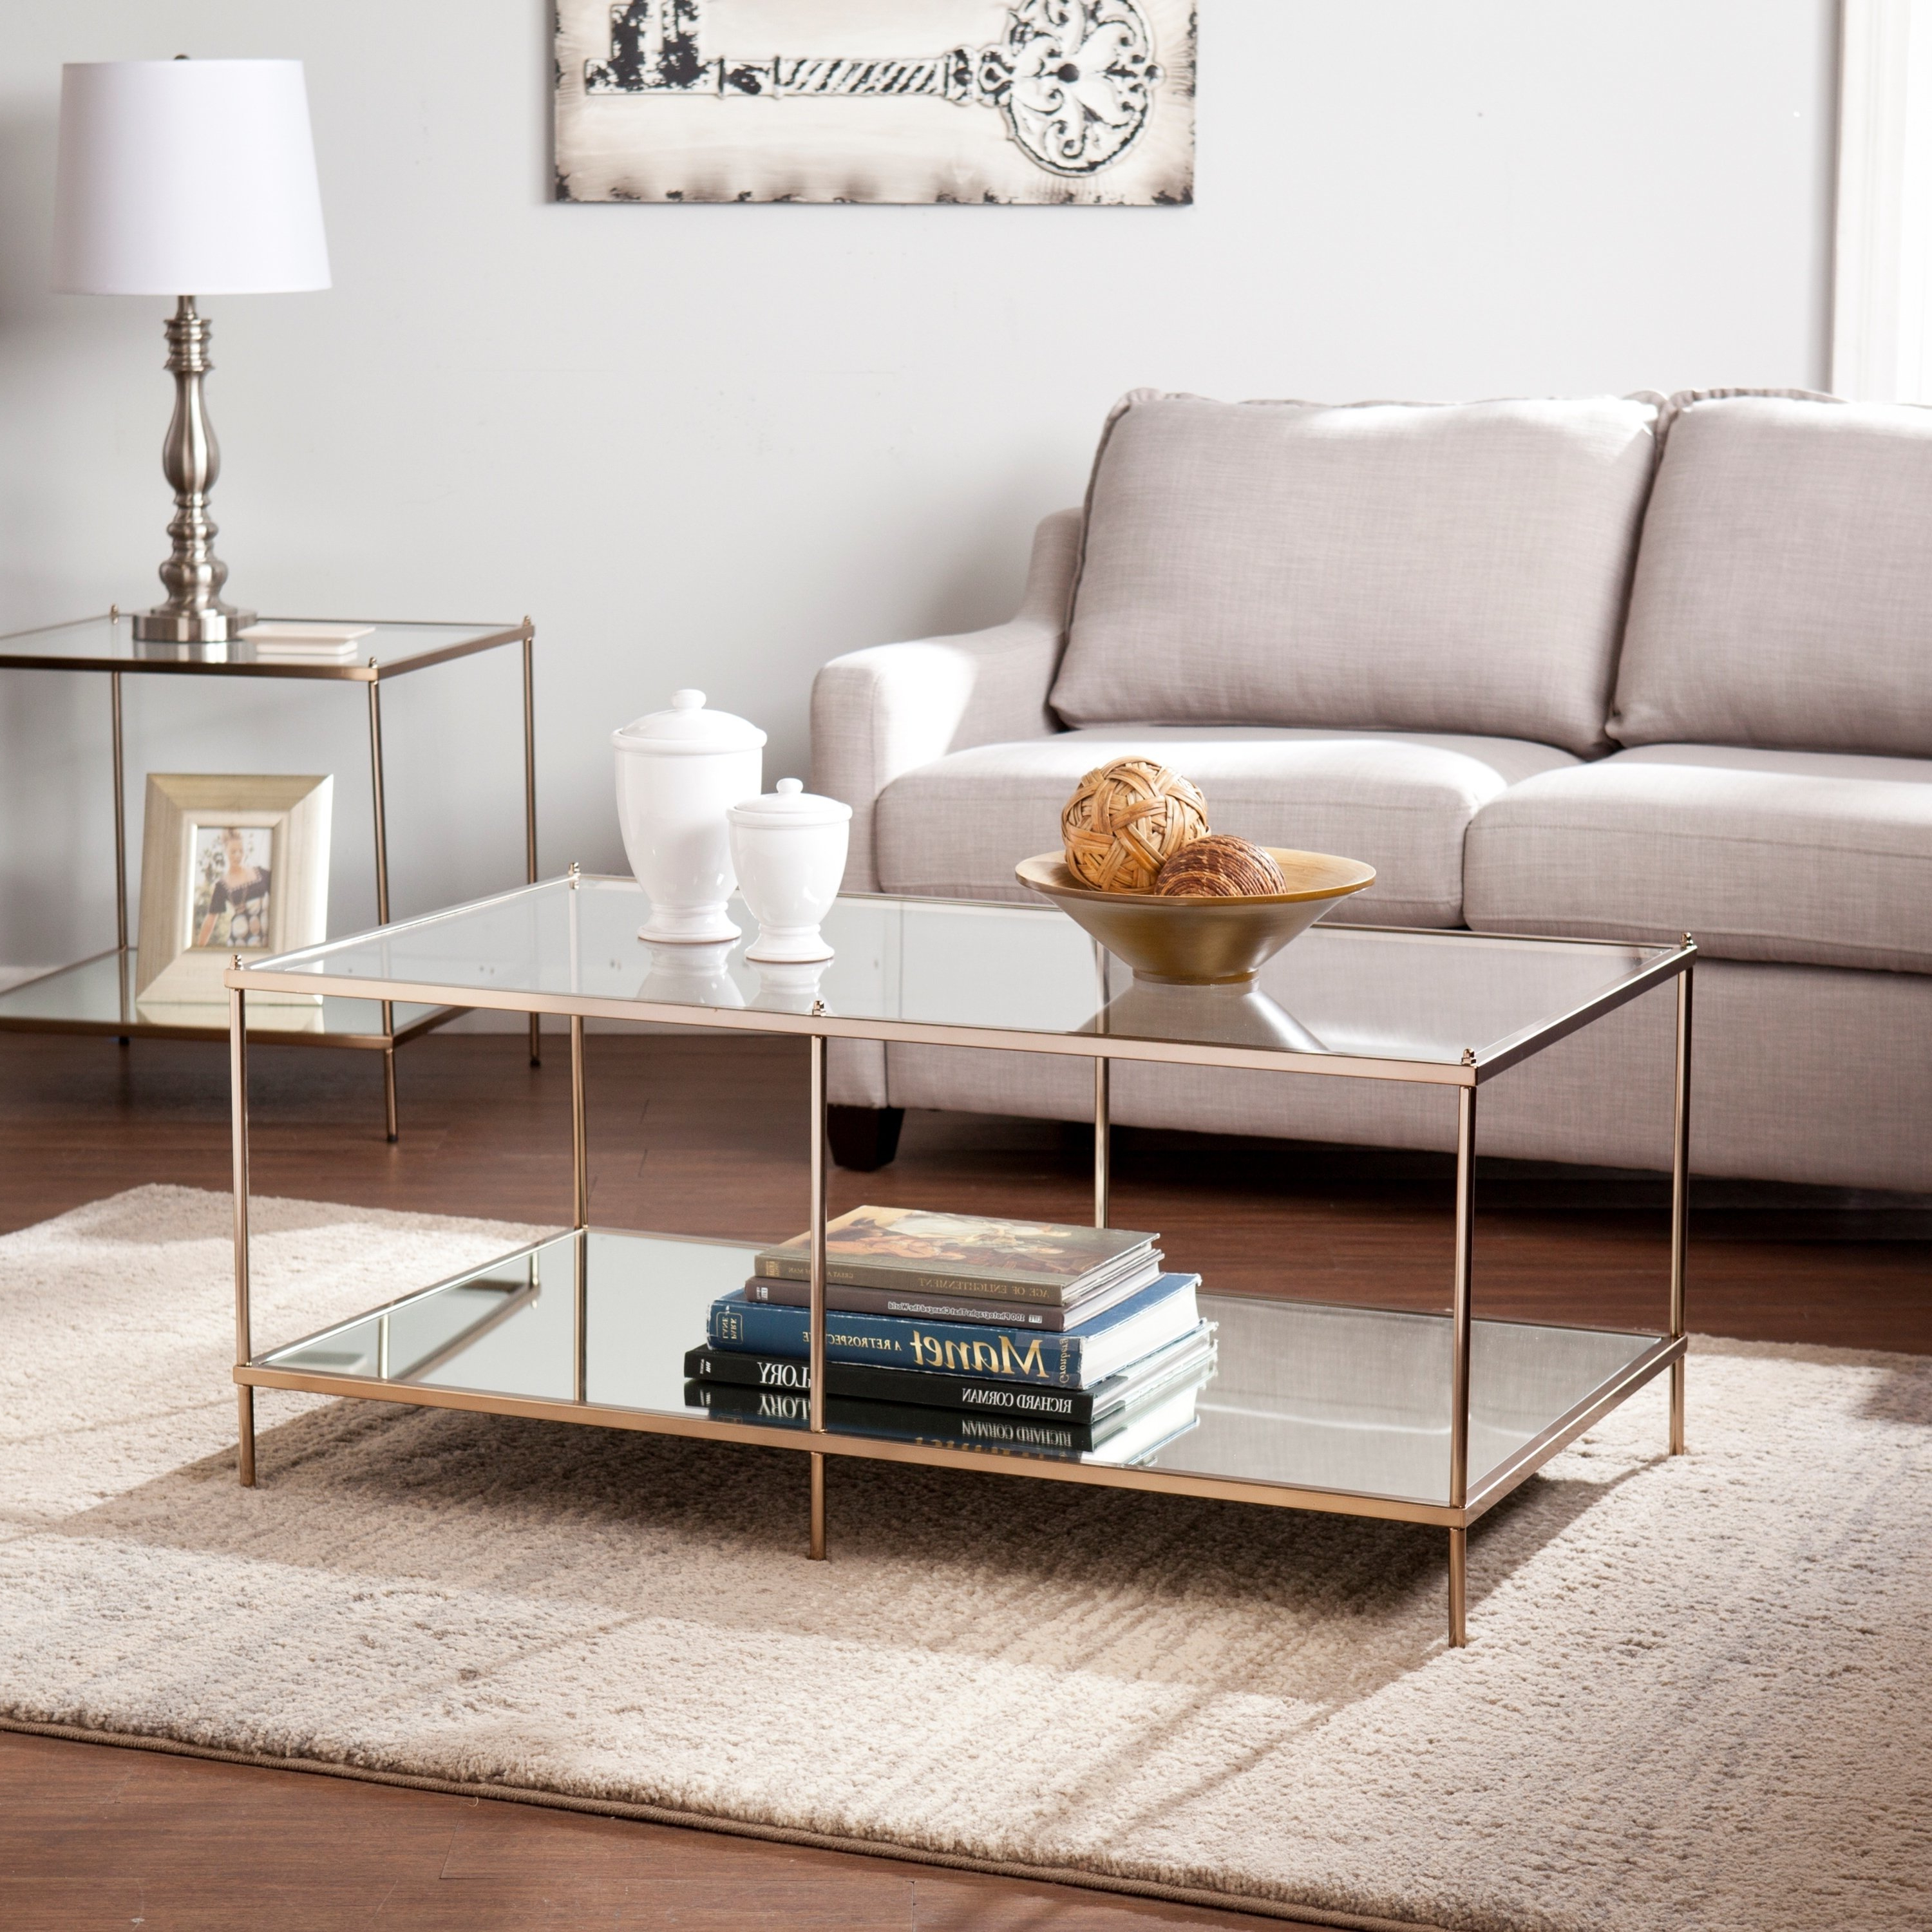 Most Recently Released Harper Down Oversized Sofa Chairs Throughout Shop Harper Blvd Kendall Goldtone Glass Top Coffee Table – Free (View 12 of 20)